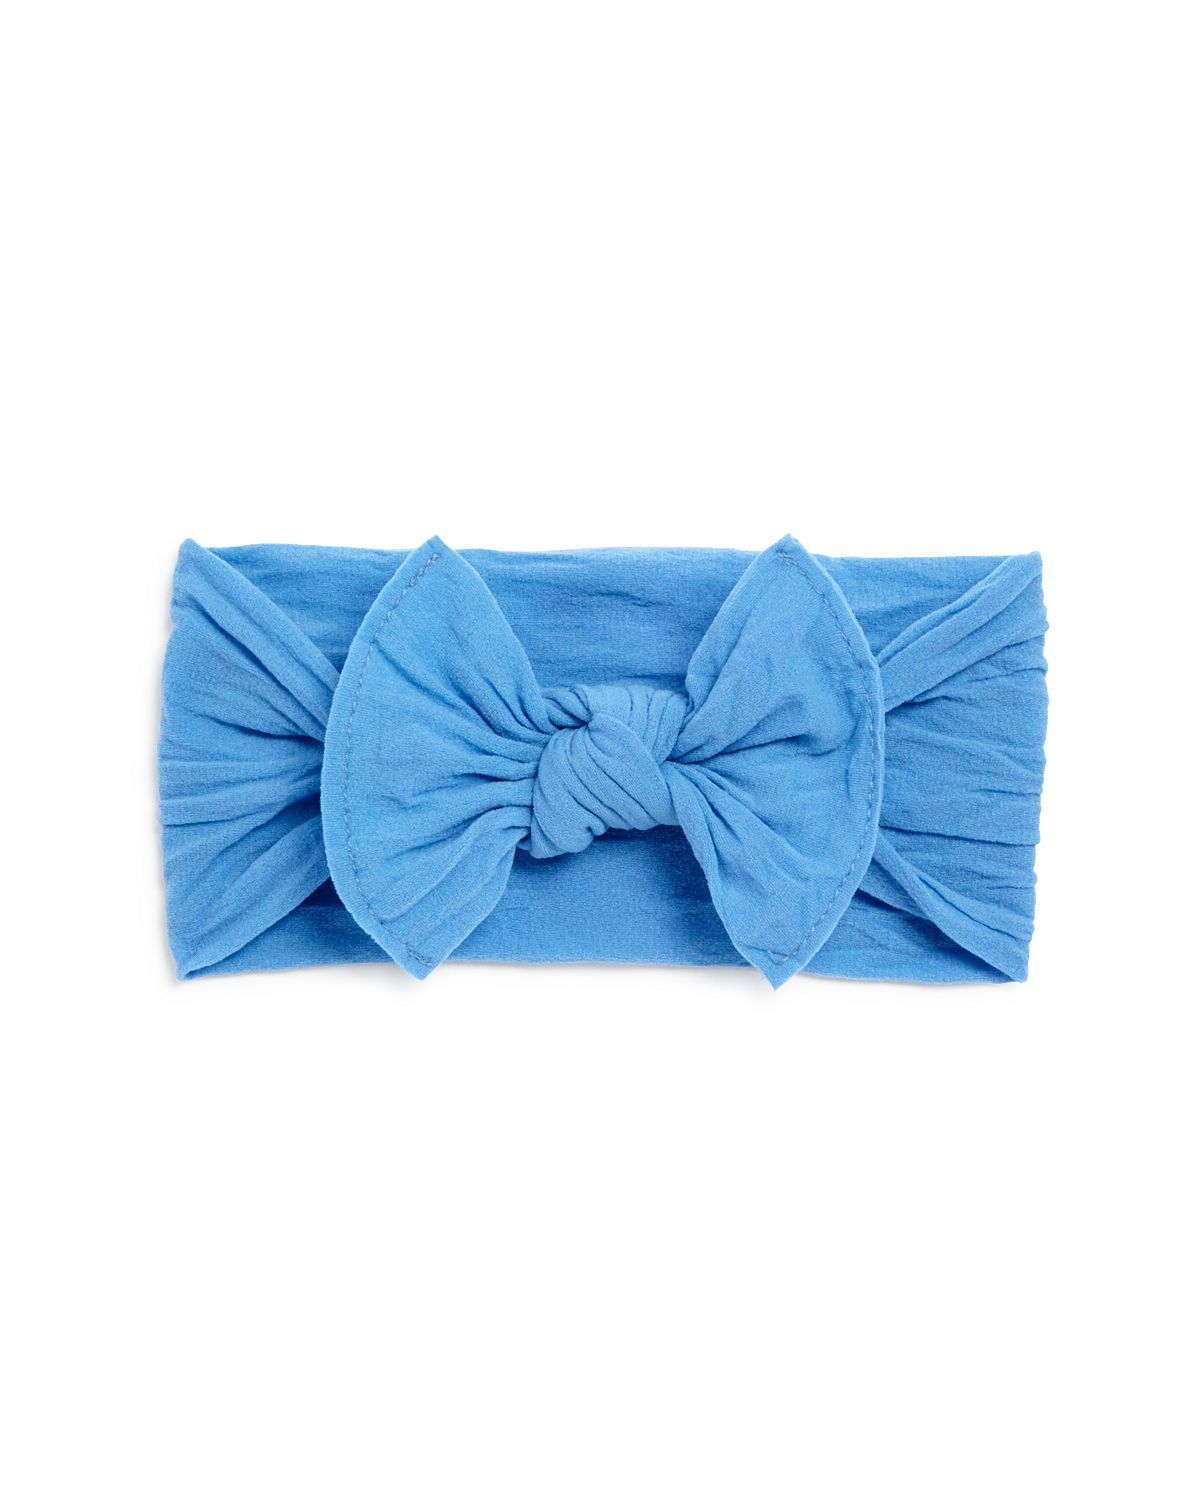 35c4dd5b906 Girls' Bow Headband - Baby | Baby Bling Collection | Baby bling ...